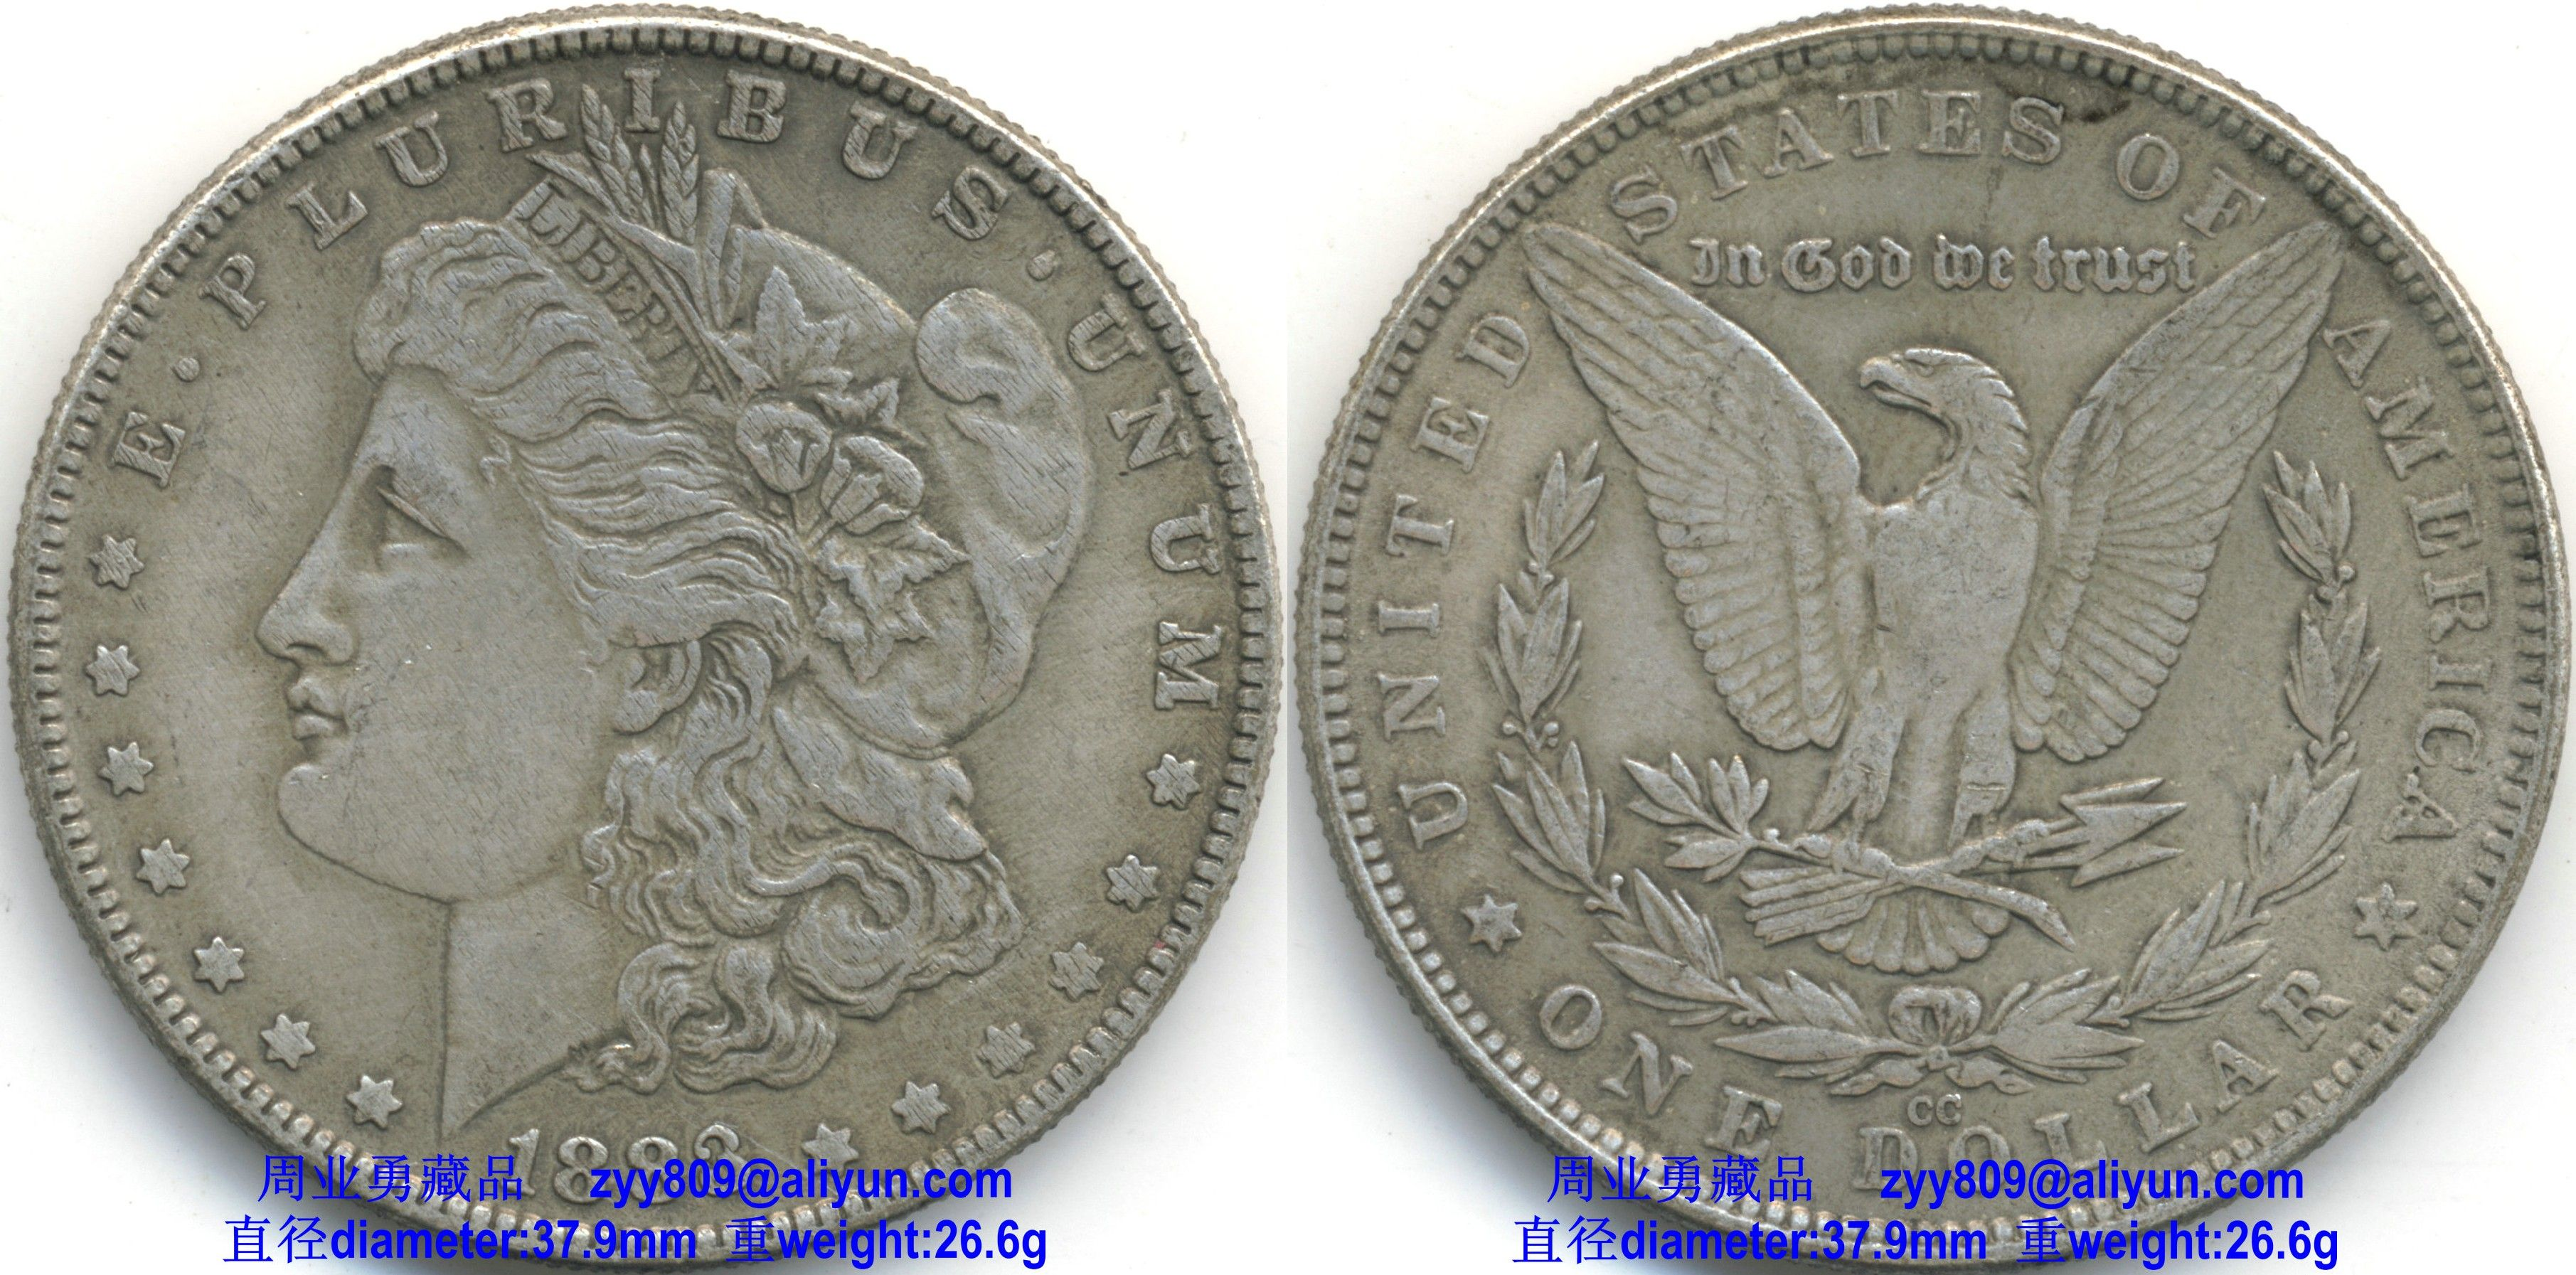 1883 Morgan Silver Dollar Legends Obverse Epluribusunum 1883